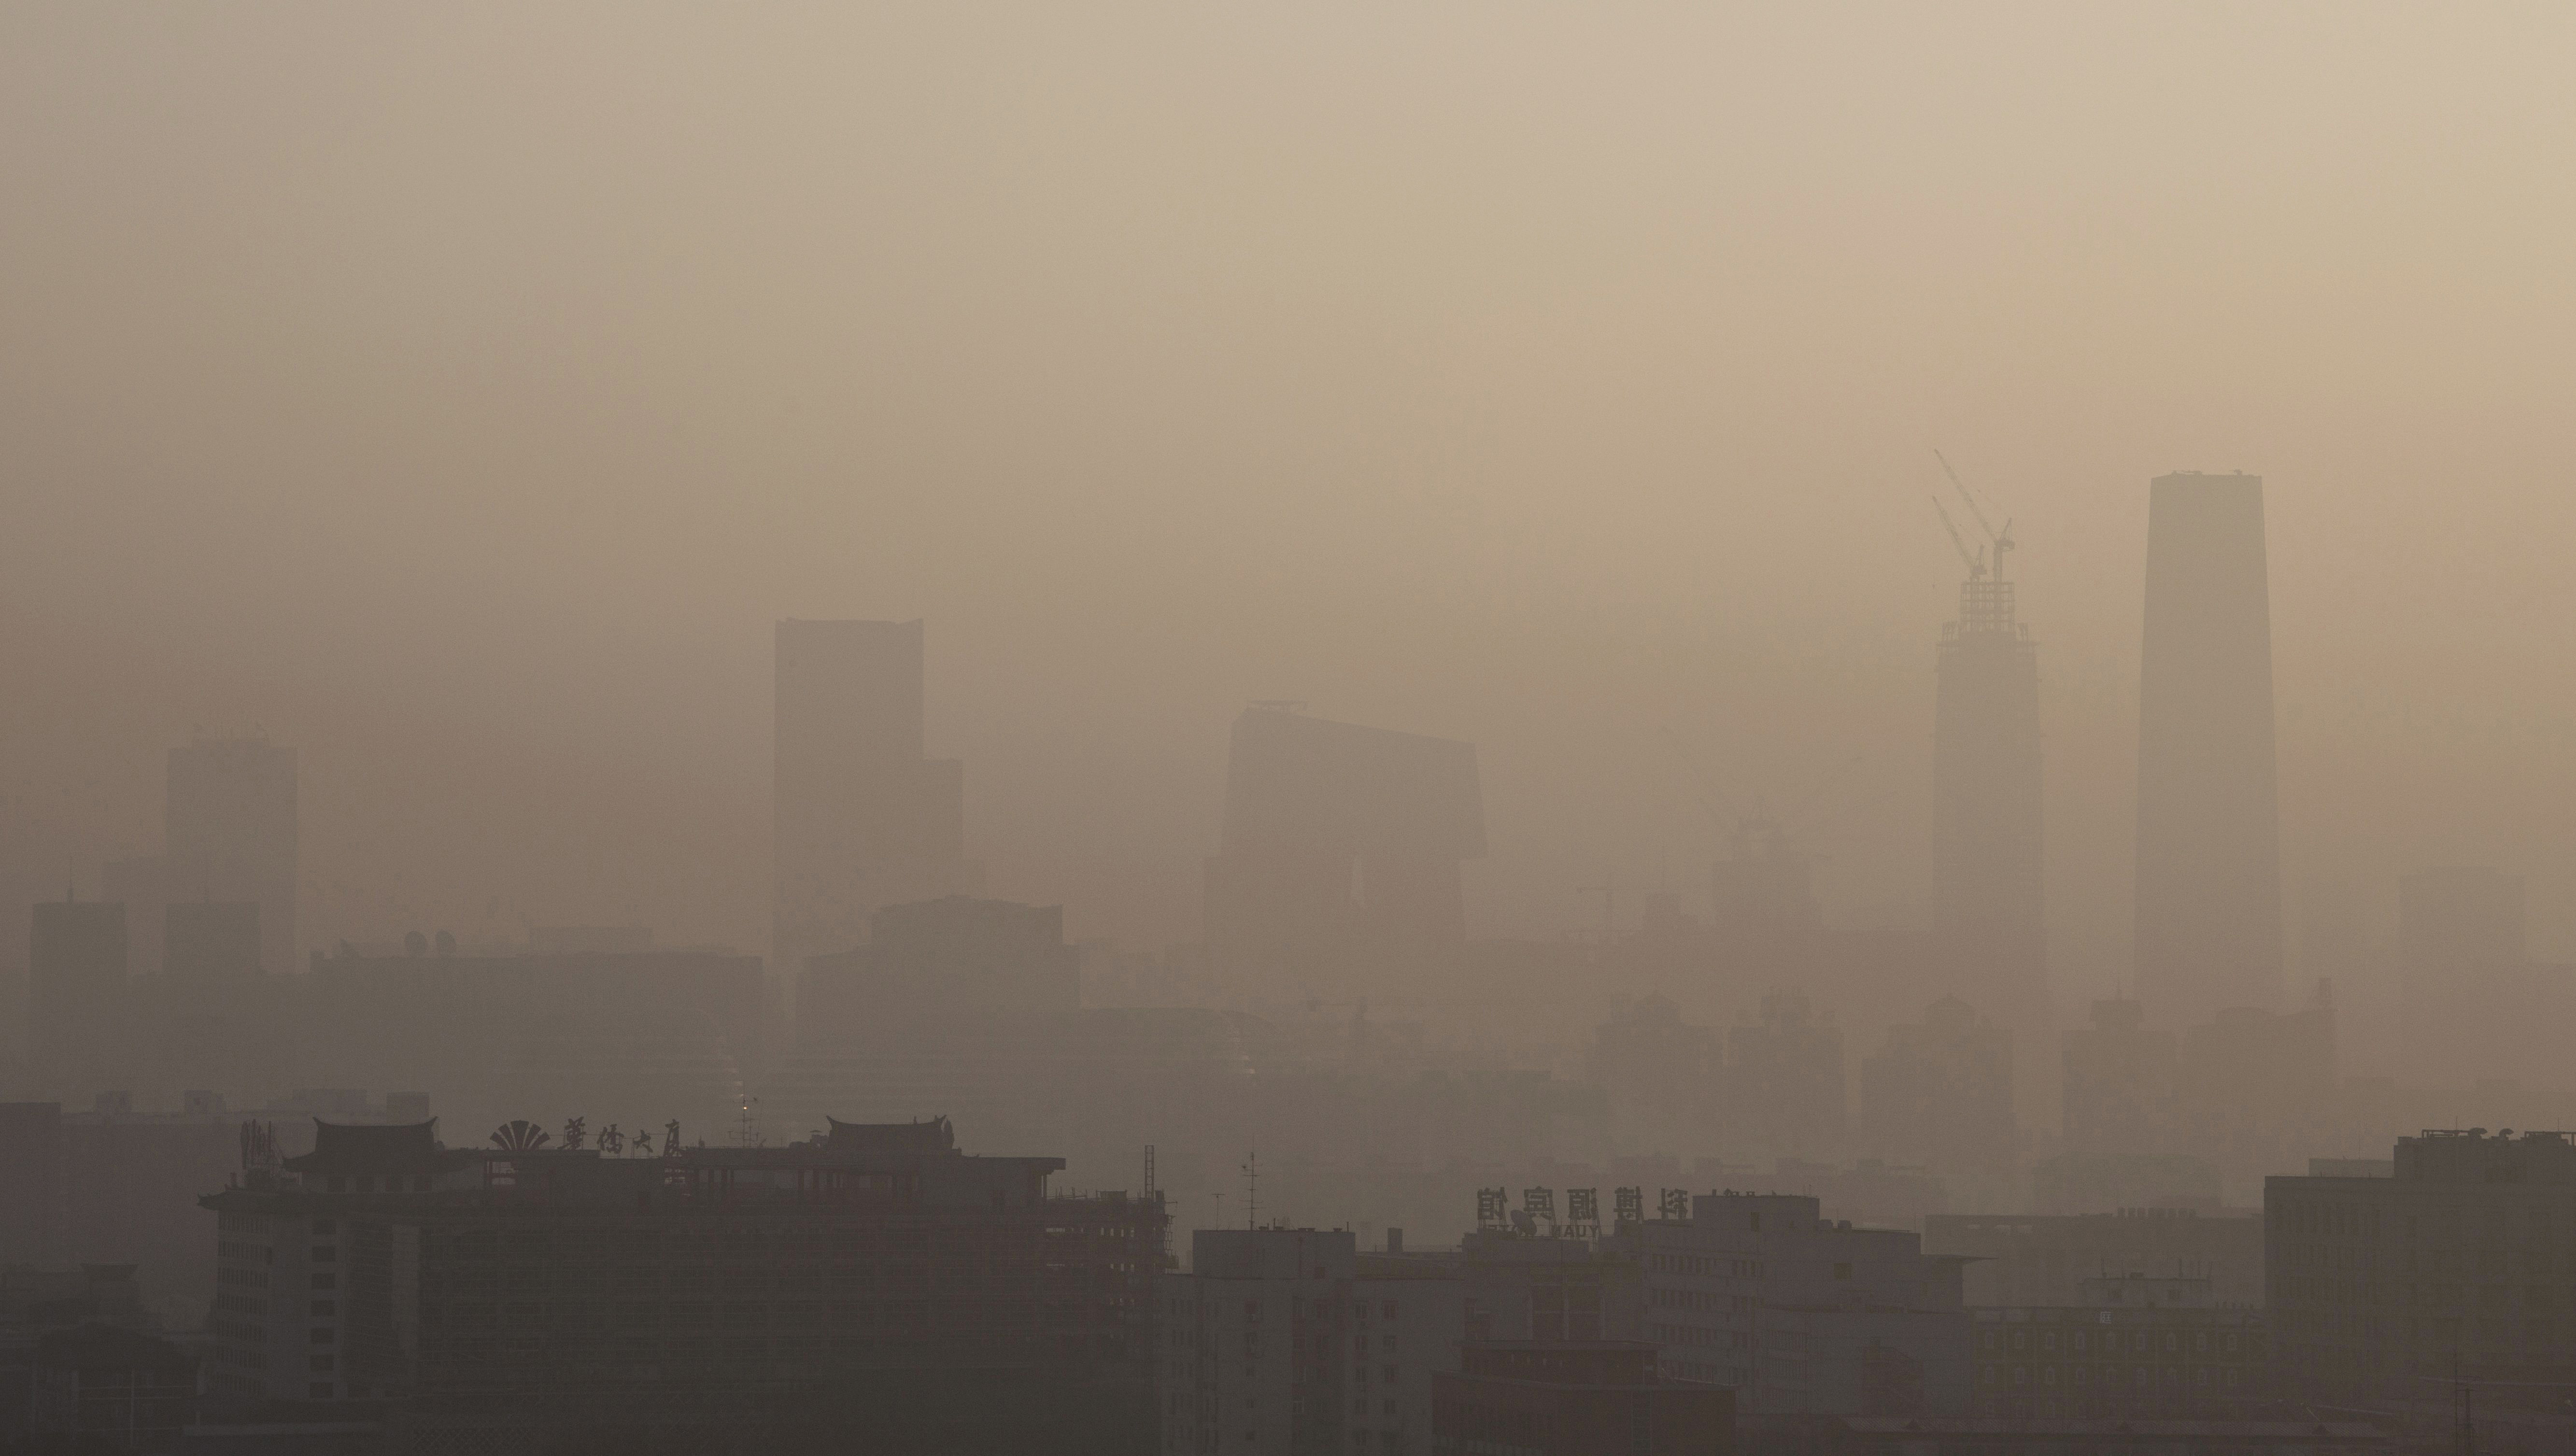 The skyline of Beijing under severe smog and pollution on Dec. 10, 2015